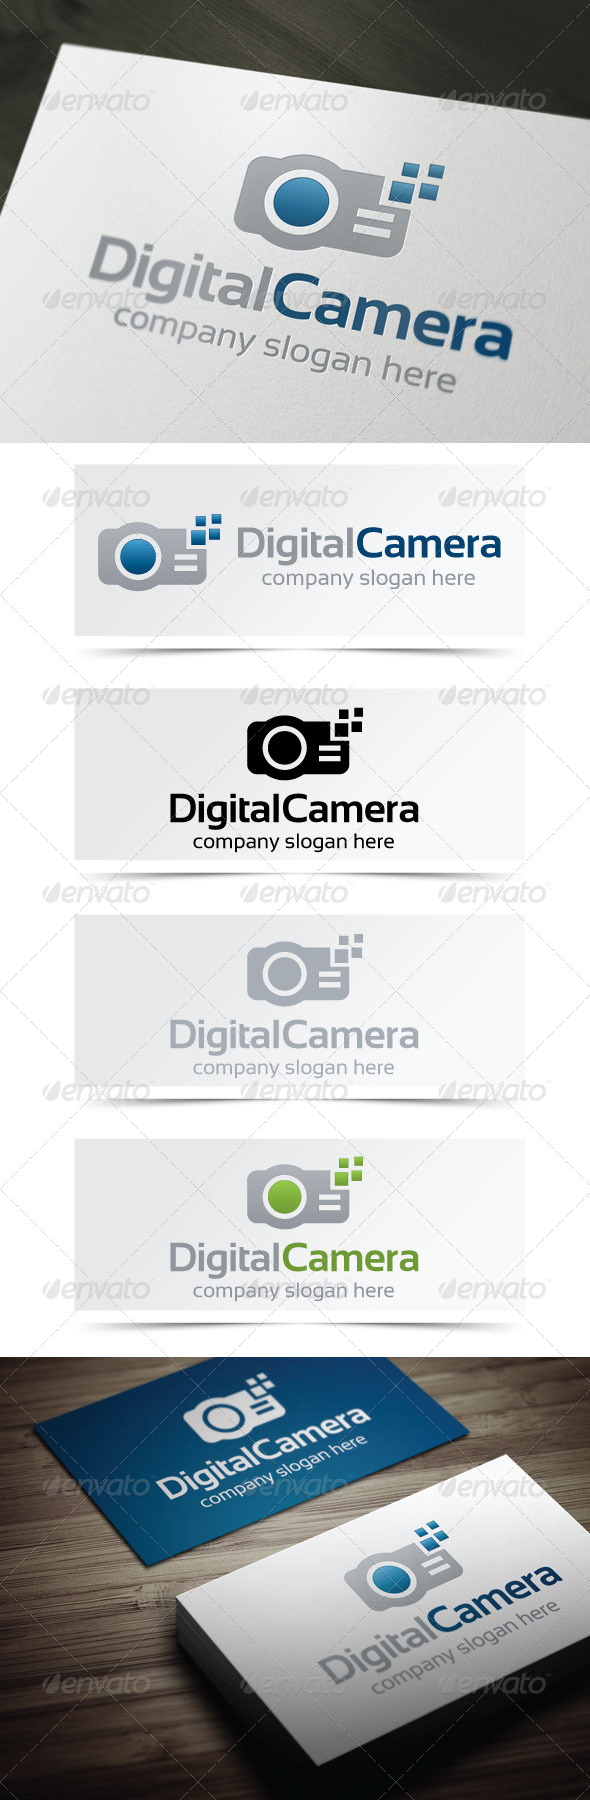 GraphicRiver Digital Camera 4710958